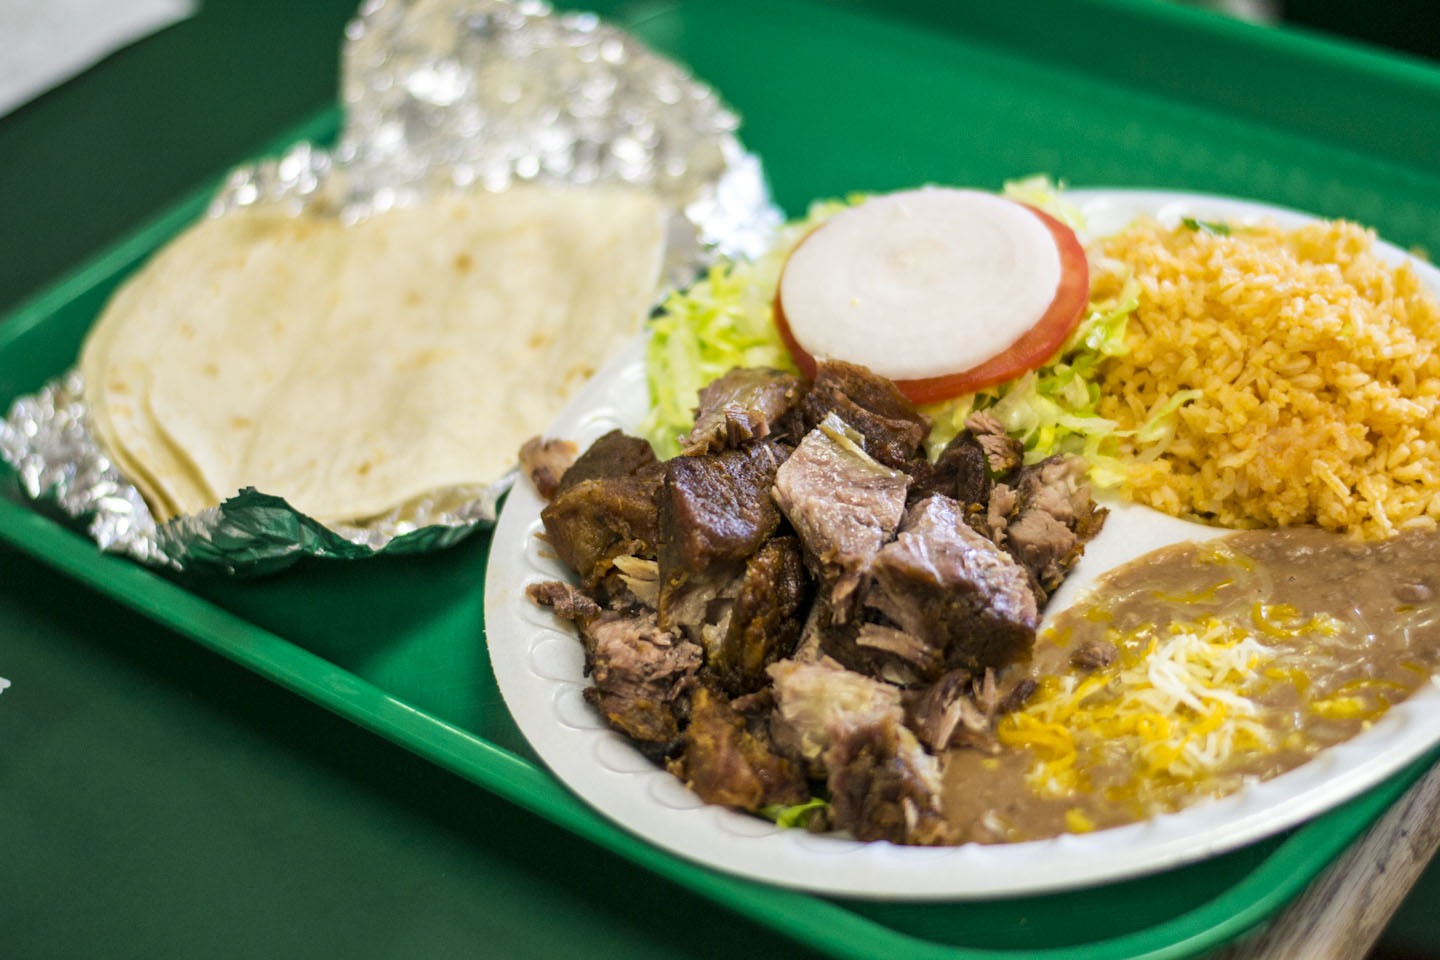 Authentic Mexican food for fast food prices